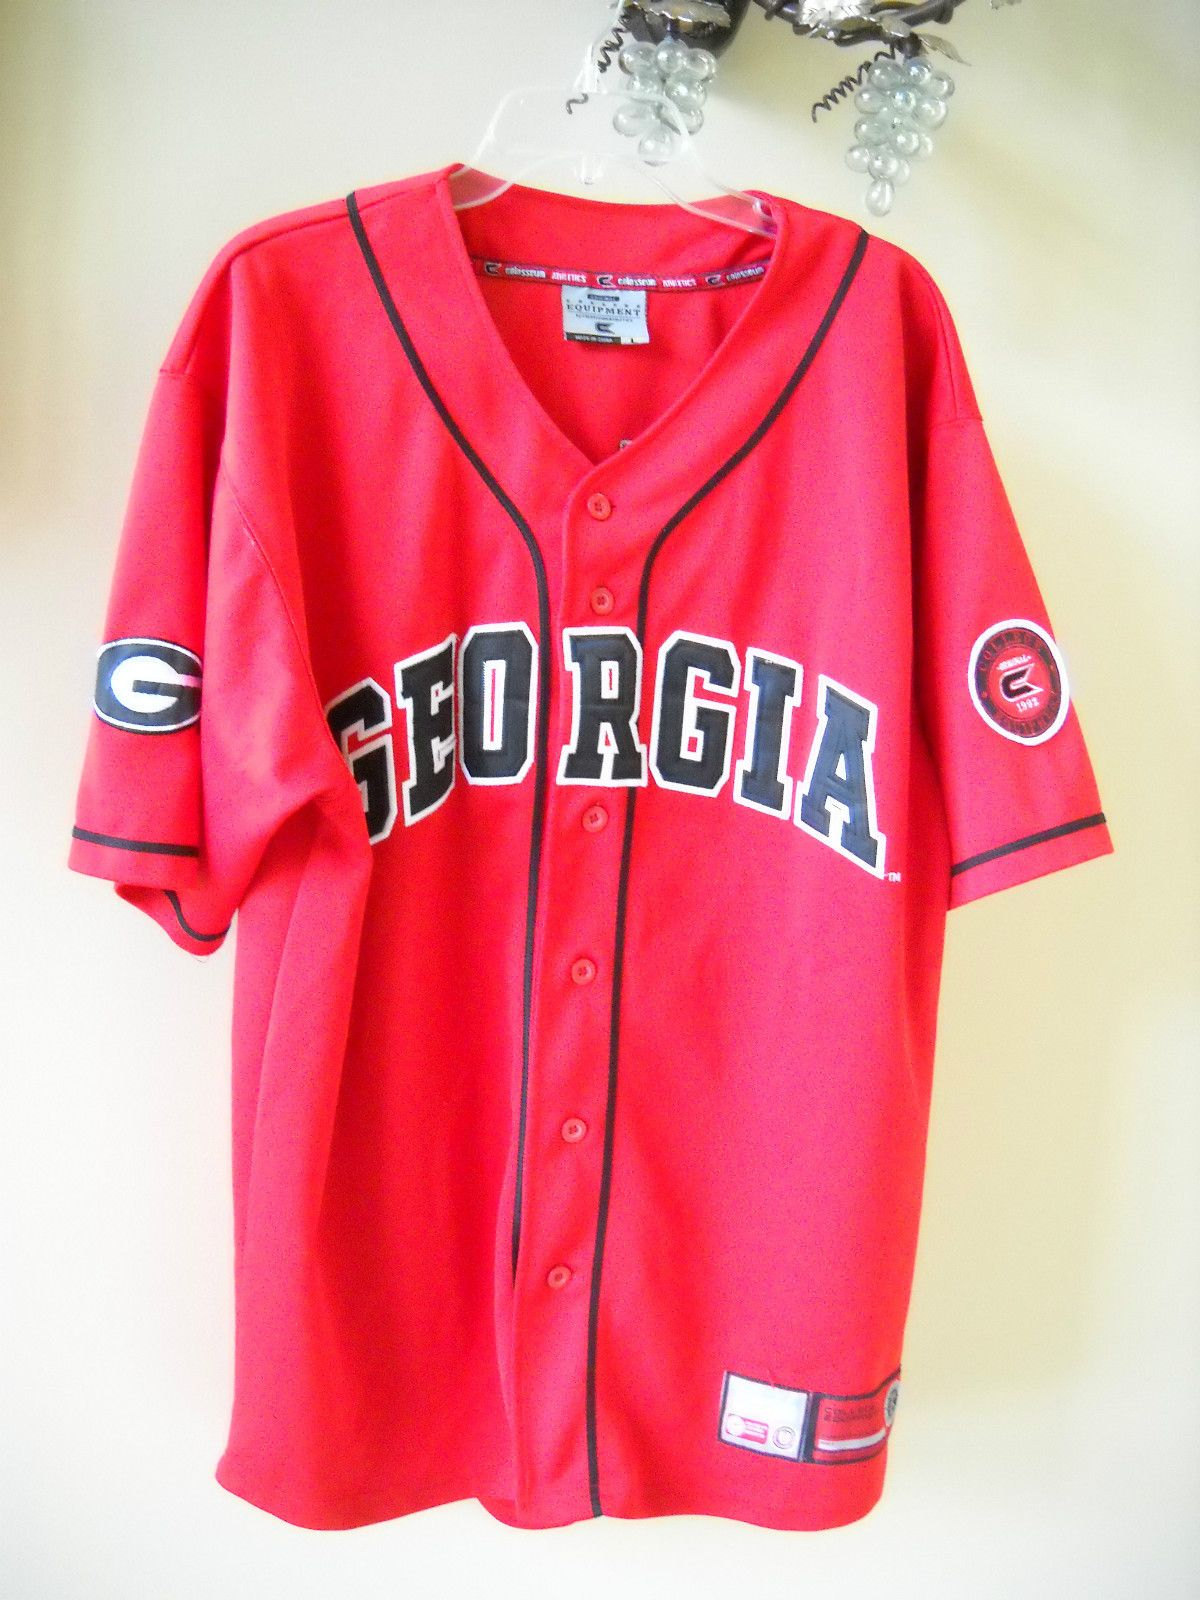 UGA Georgia Bulldogs  33 College Equilpment Colossium Athletics Baseball  Jersey  574184cc8